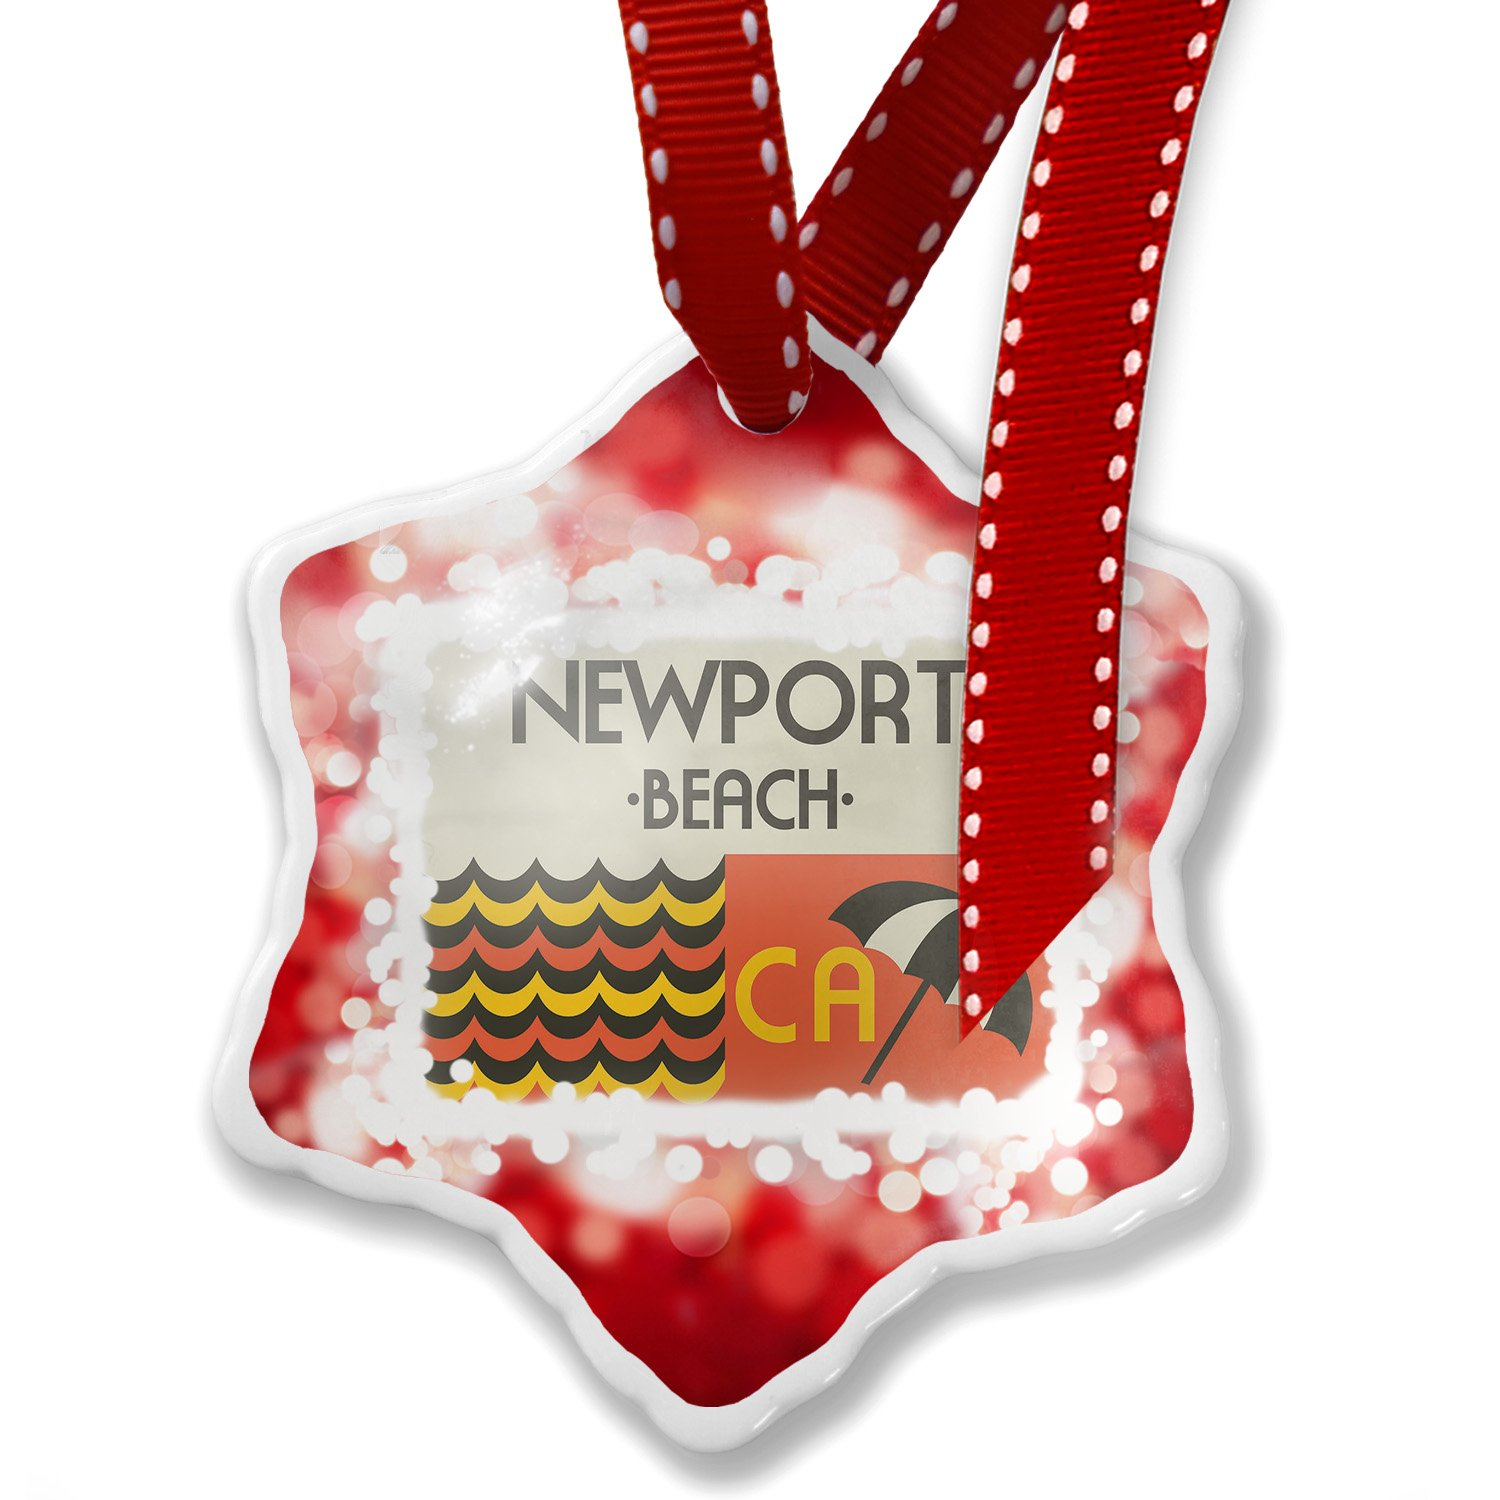 Christmas Ornament US Beaches Retro Newport Beach, red - Neonblond